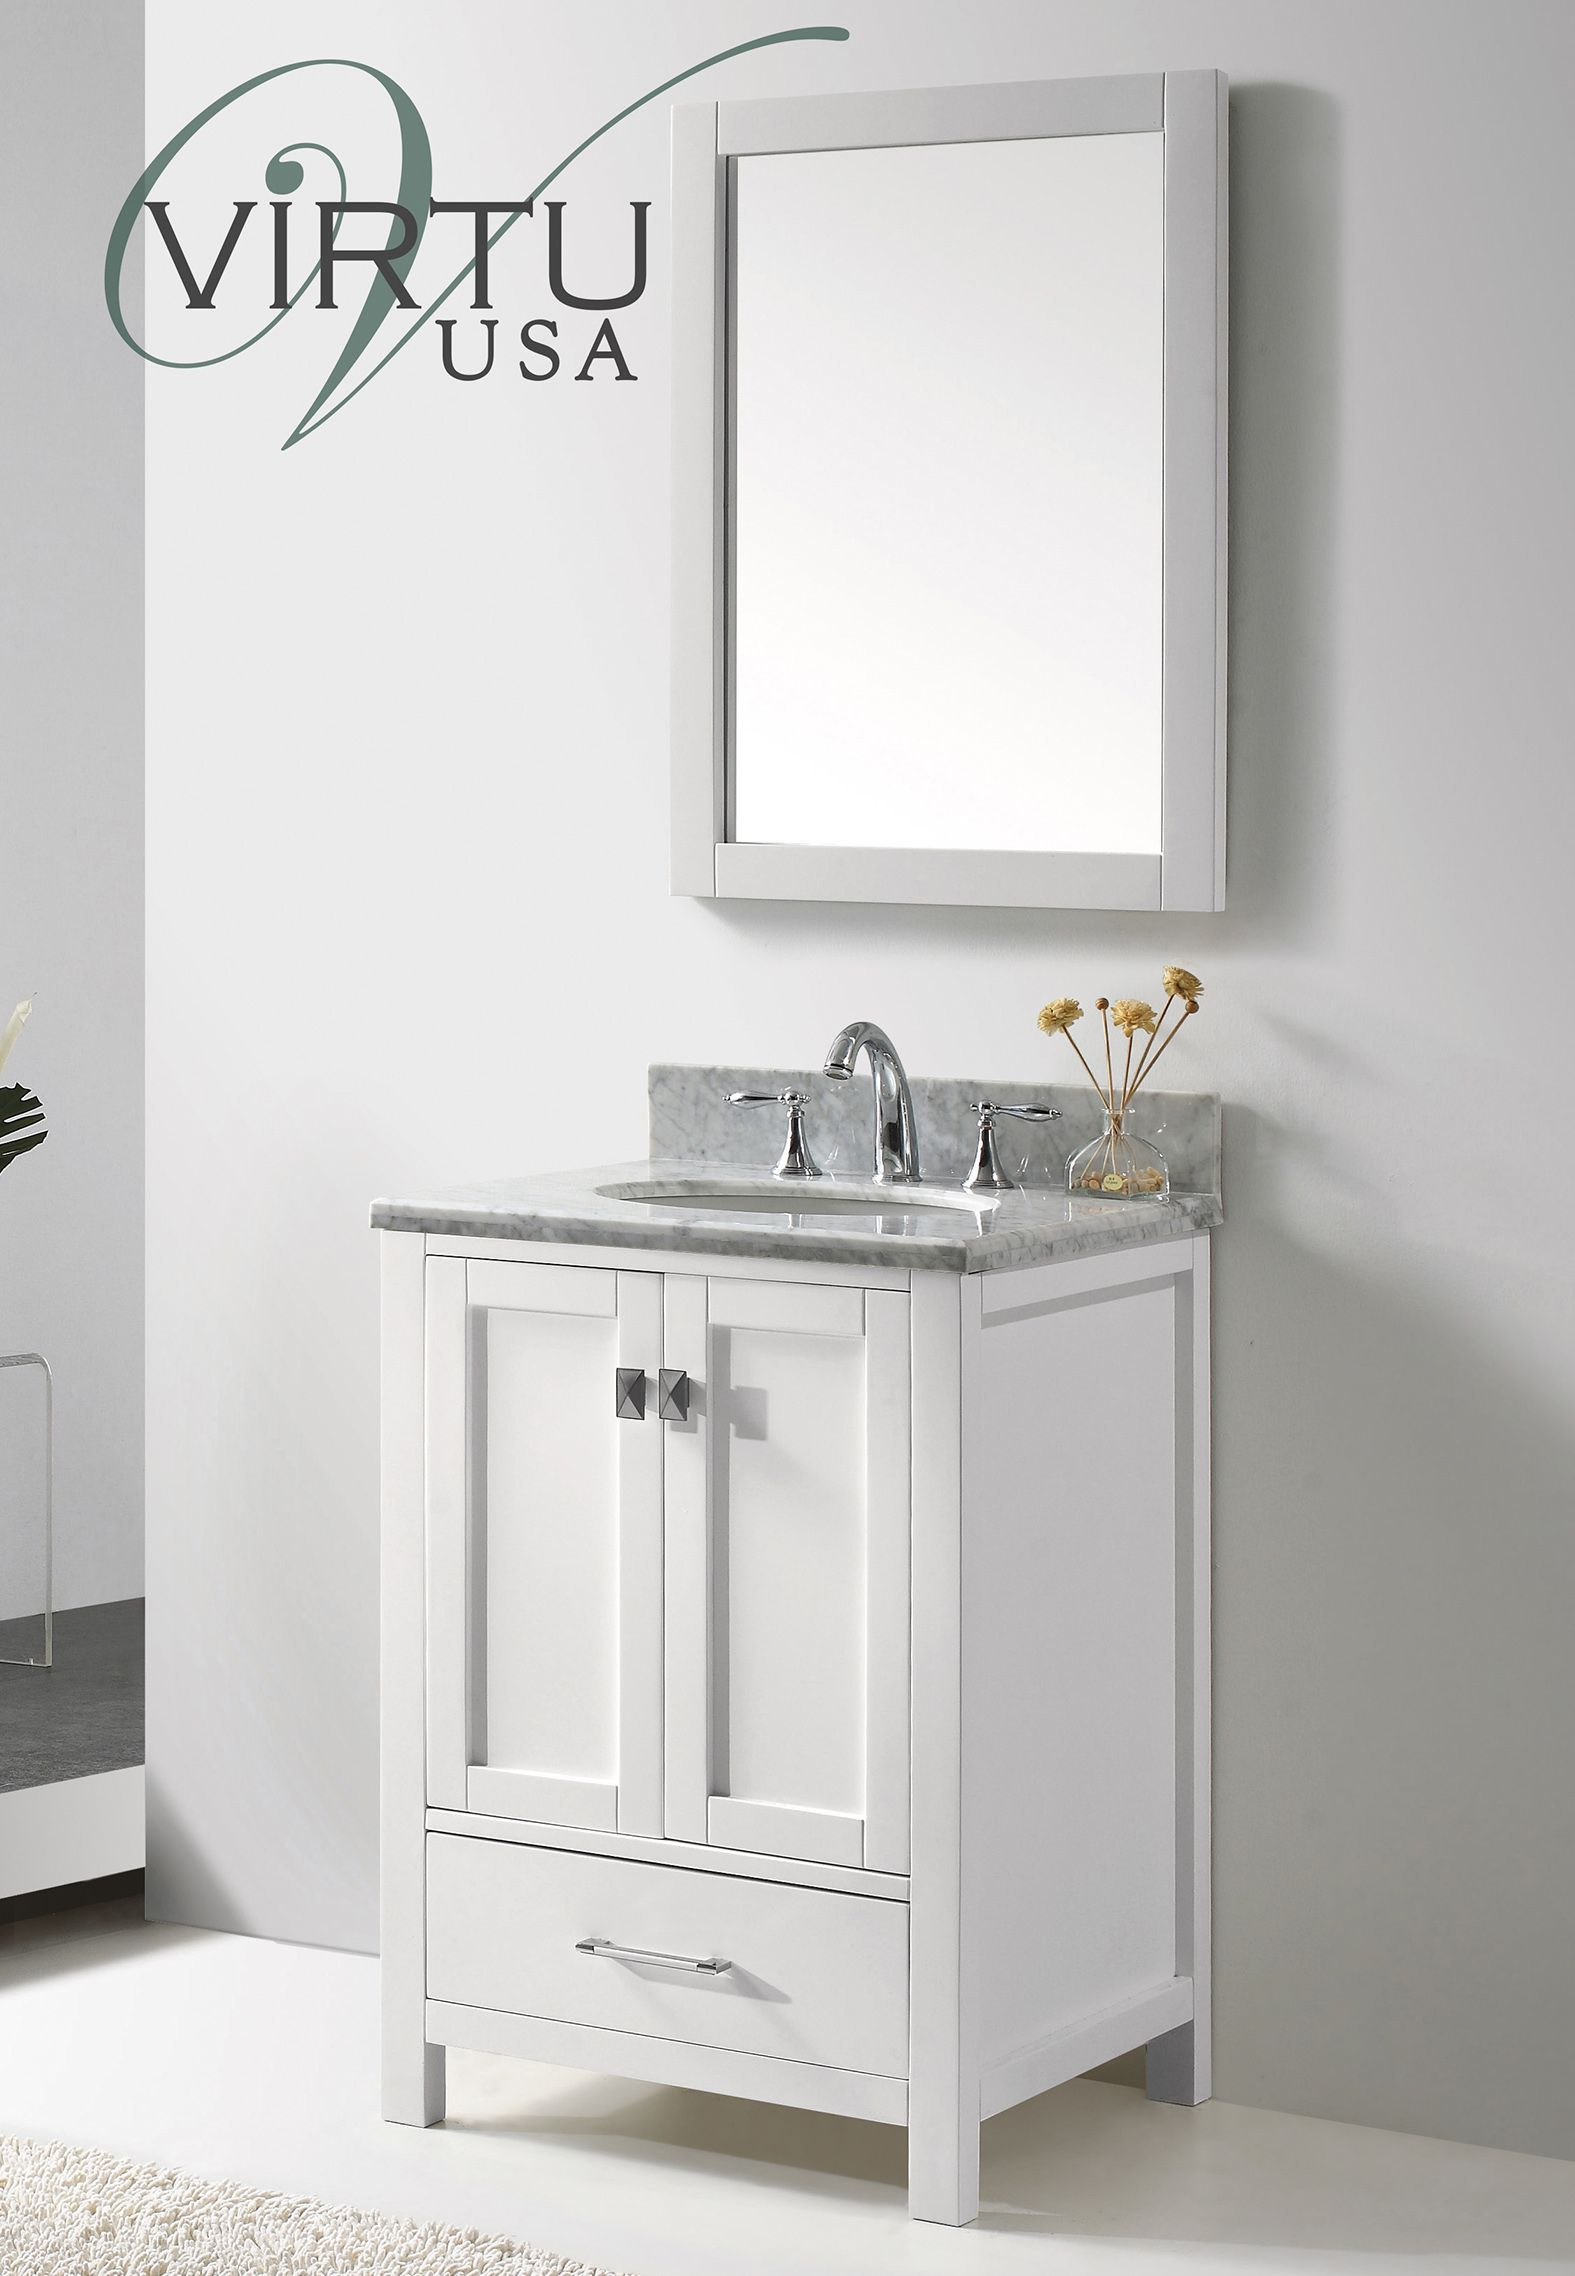 24 Inch Bathroom Vanity And Sink caroline avenue 24 inch contemporary bathroom vanity | bathroom